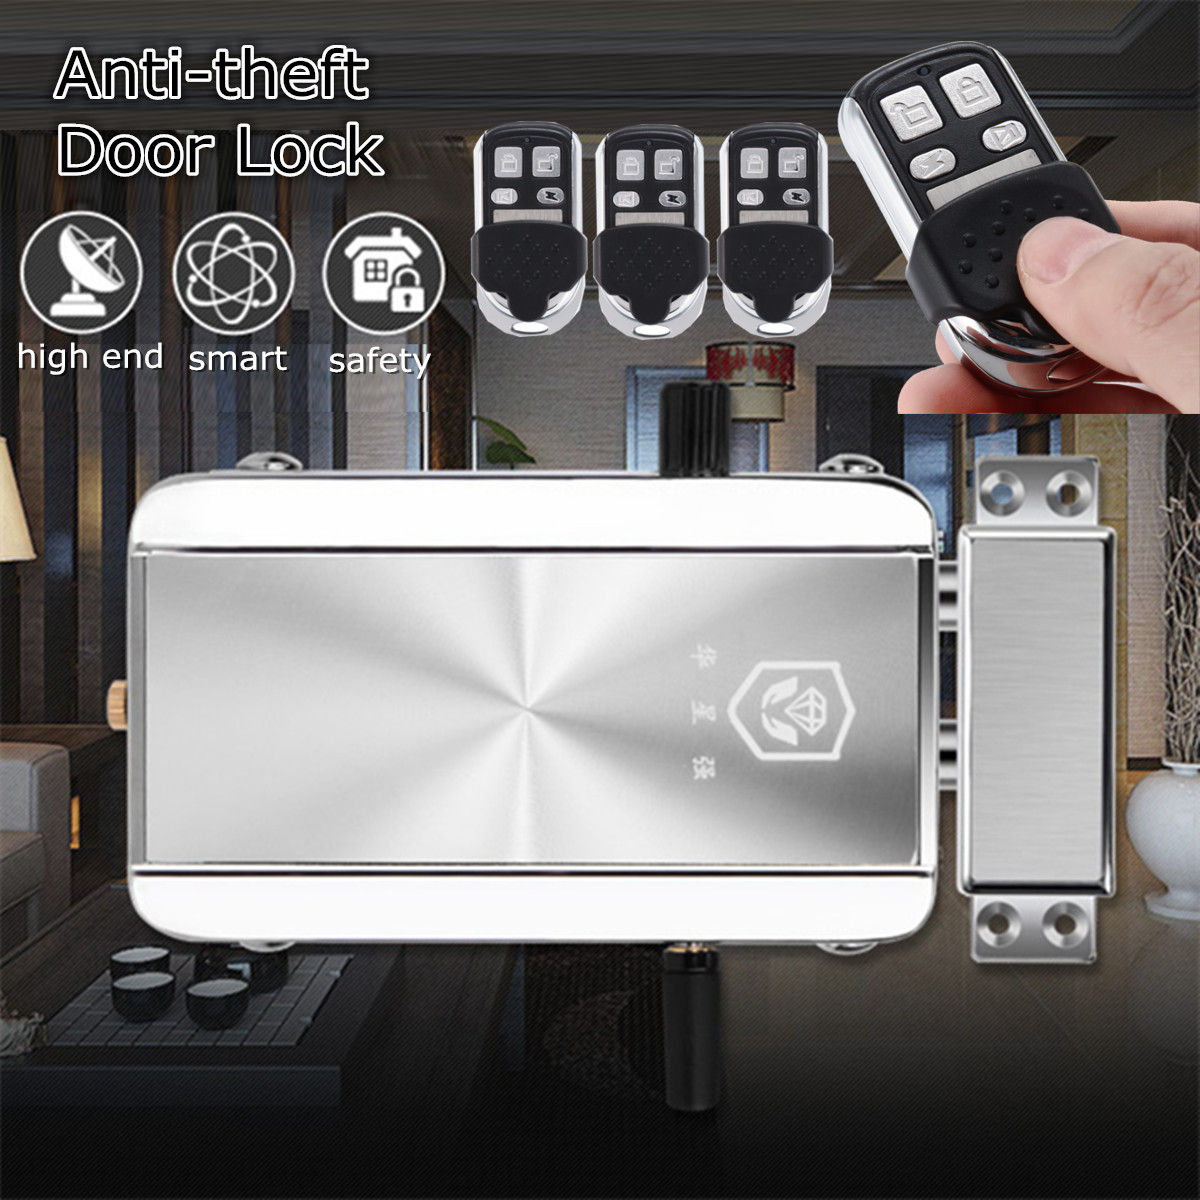 Electronic Remote Control Door Lock Wireless Anti-theft Access Lock Set Automation Intelligence Home Hotel Security SystemElectronic Remote Control Door Lock Wireless Anti-theft Access Lock Set Automation Intelligence Home Hotel Security System